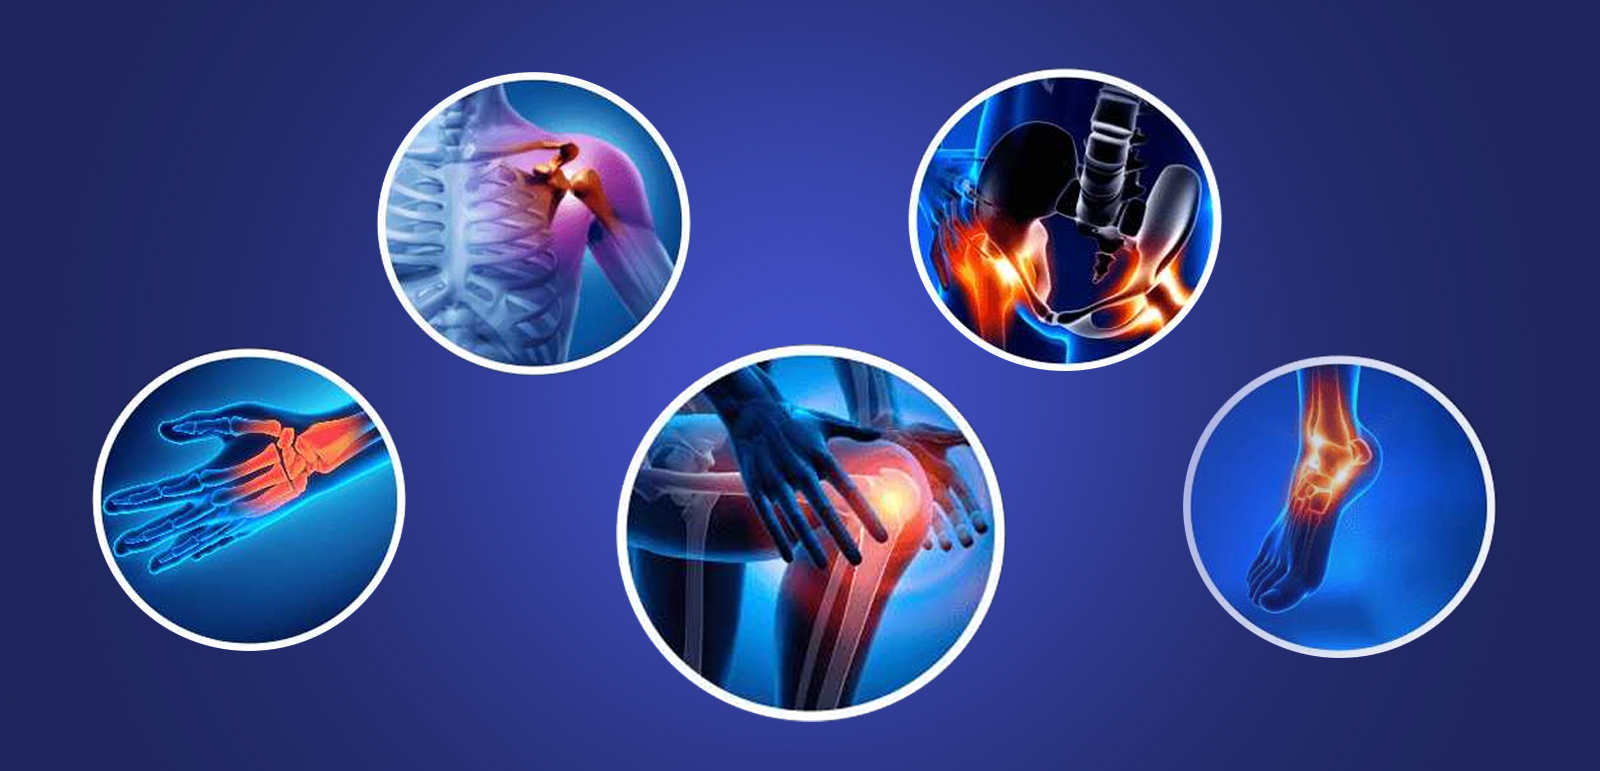 Orthopedic Cost In India | Best Orthopedic Hospital In India - Medsurgeindia